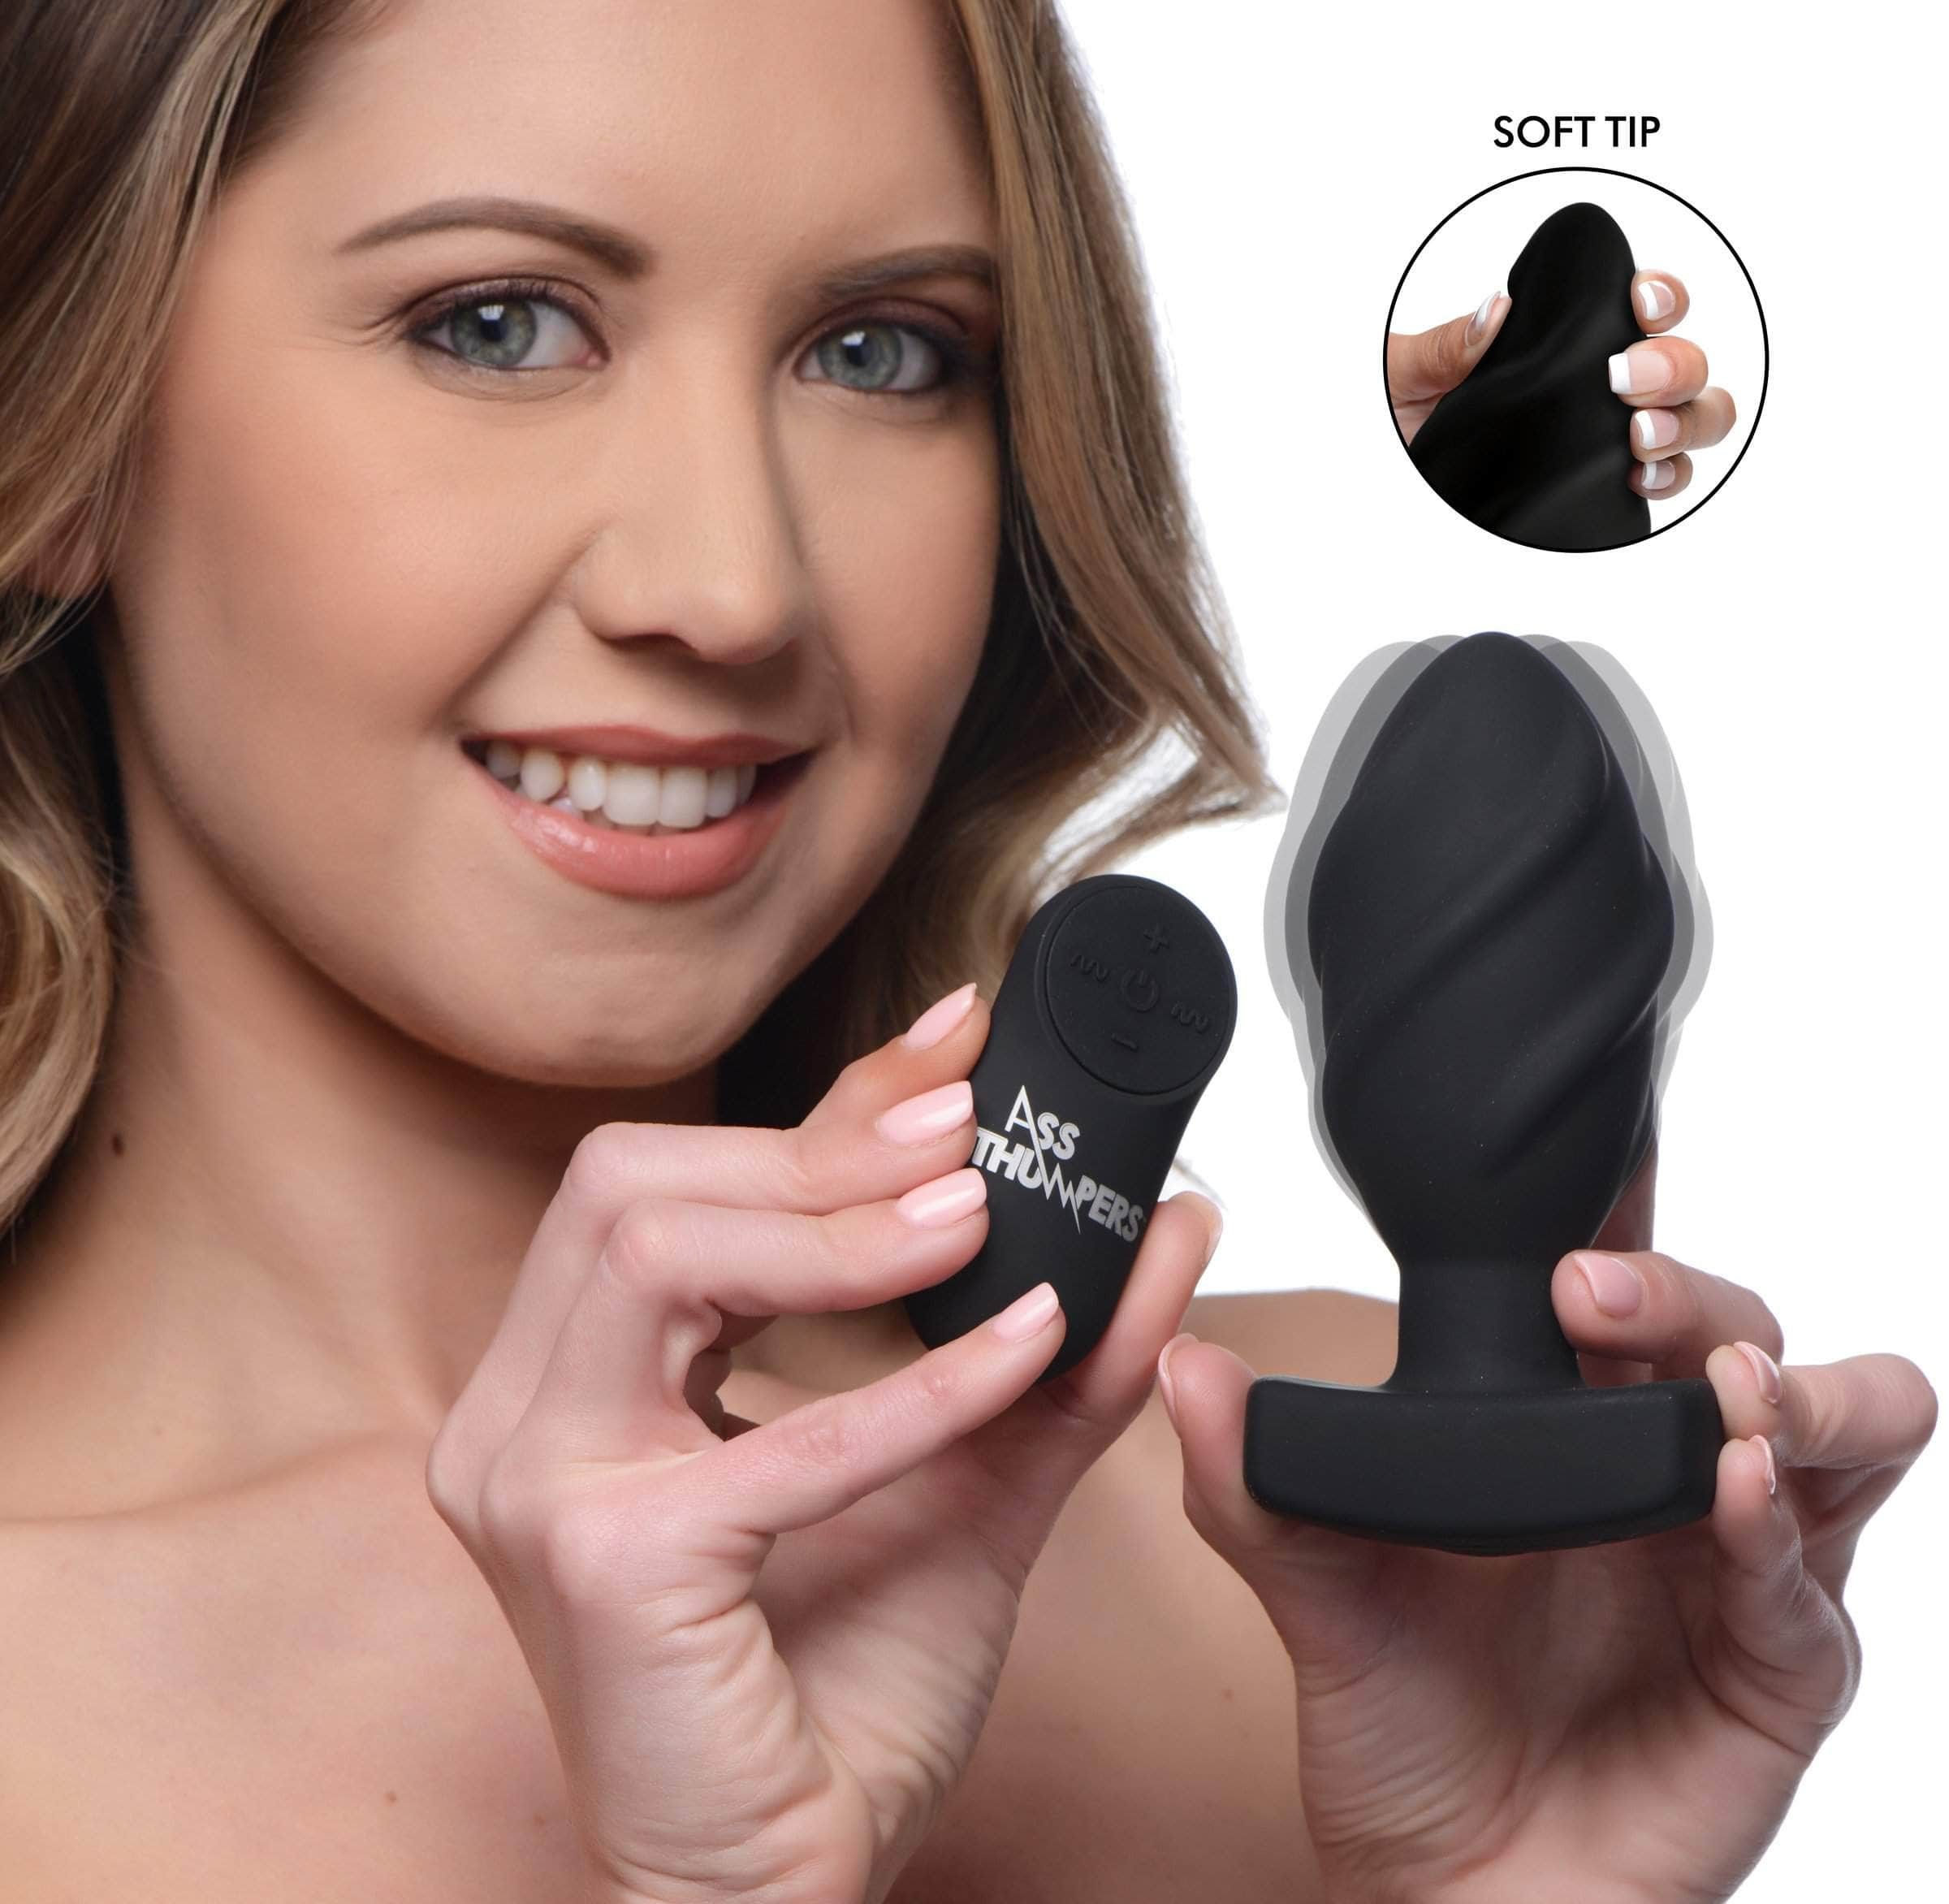 The Driller 10x Swirled Silicone Remote Control Vibrating Butt Plug